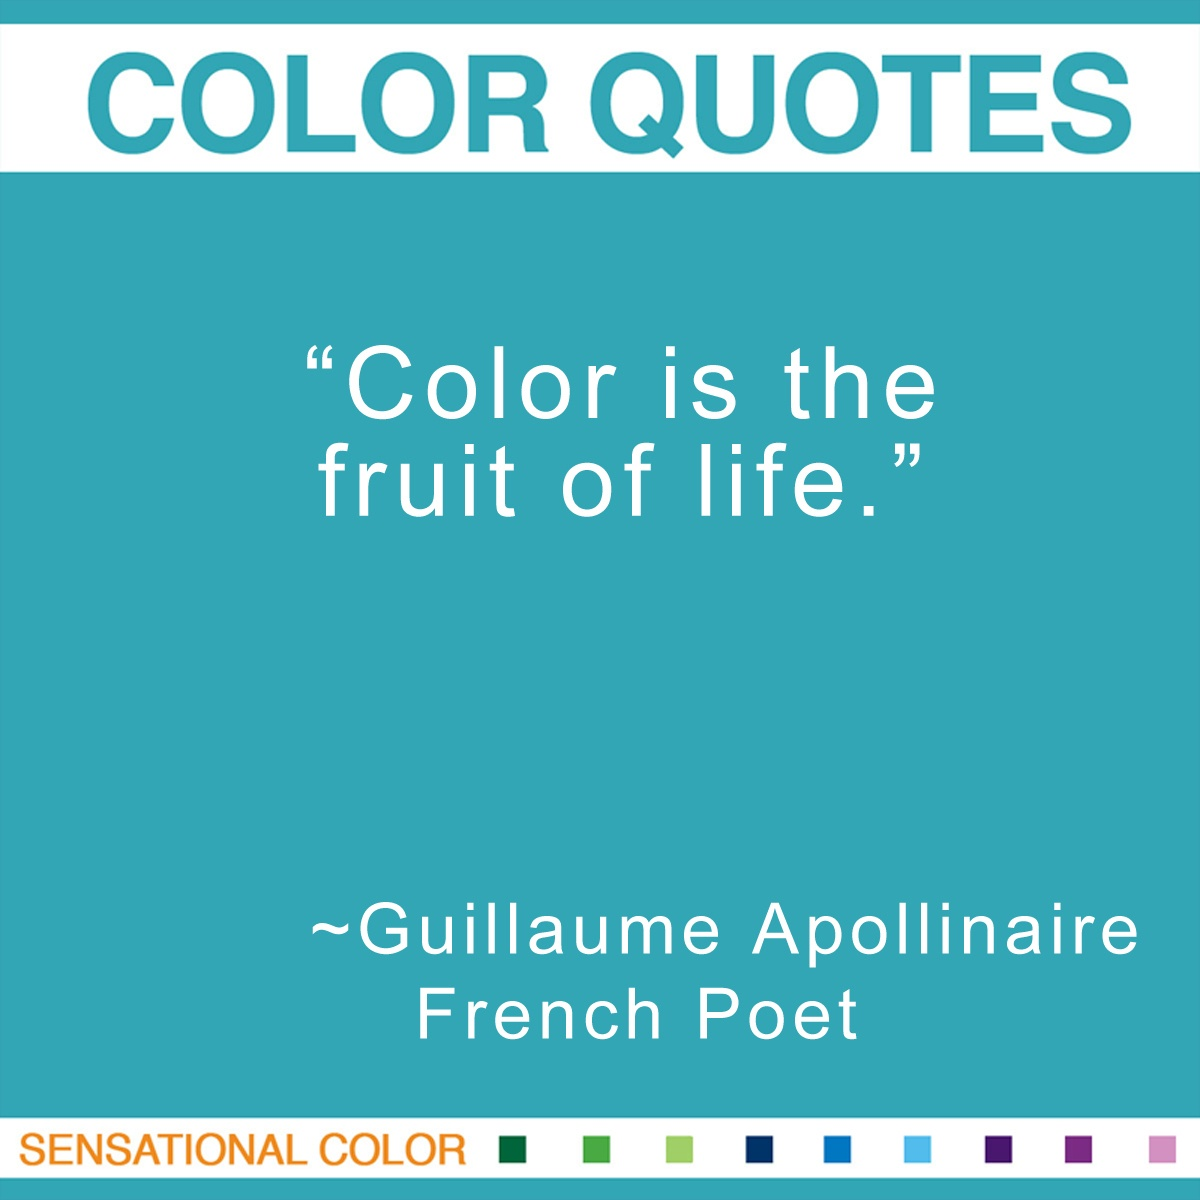 """Color is the fruit of life."" - Guillaume Apollinaire"